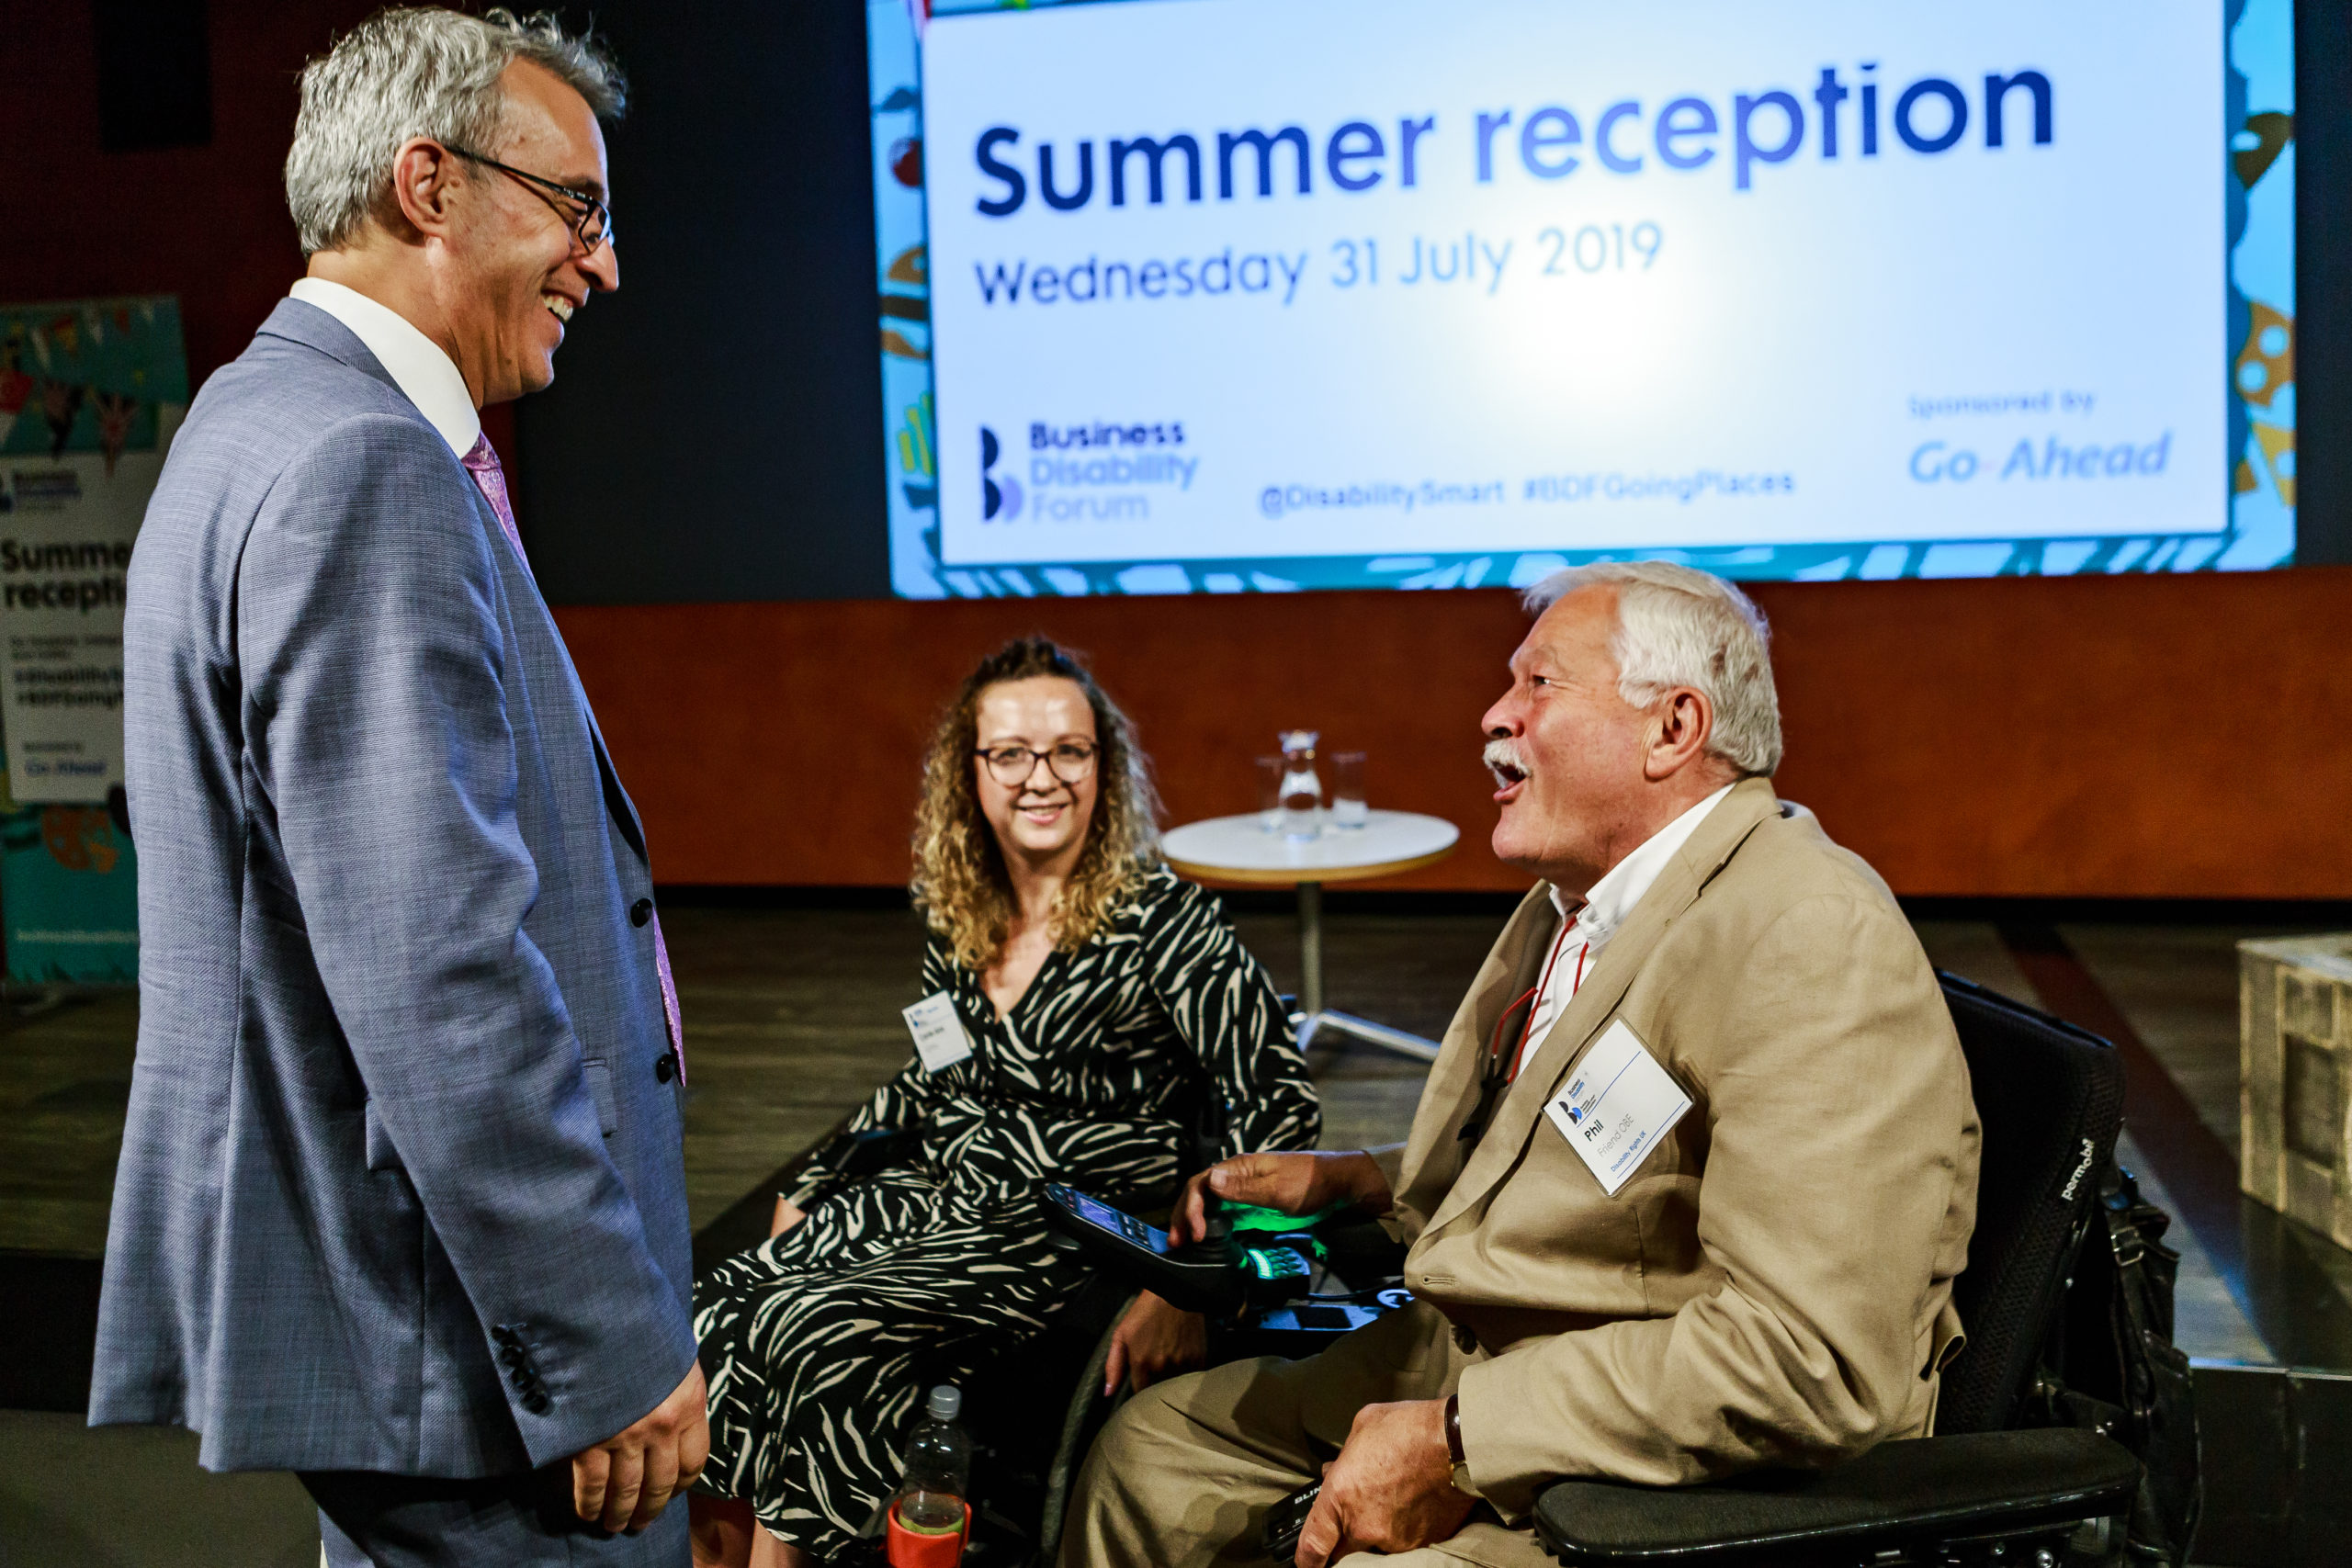 Business Disability Forum Summer Reception 2019